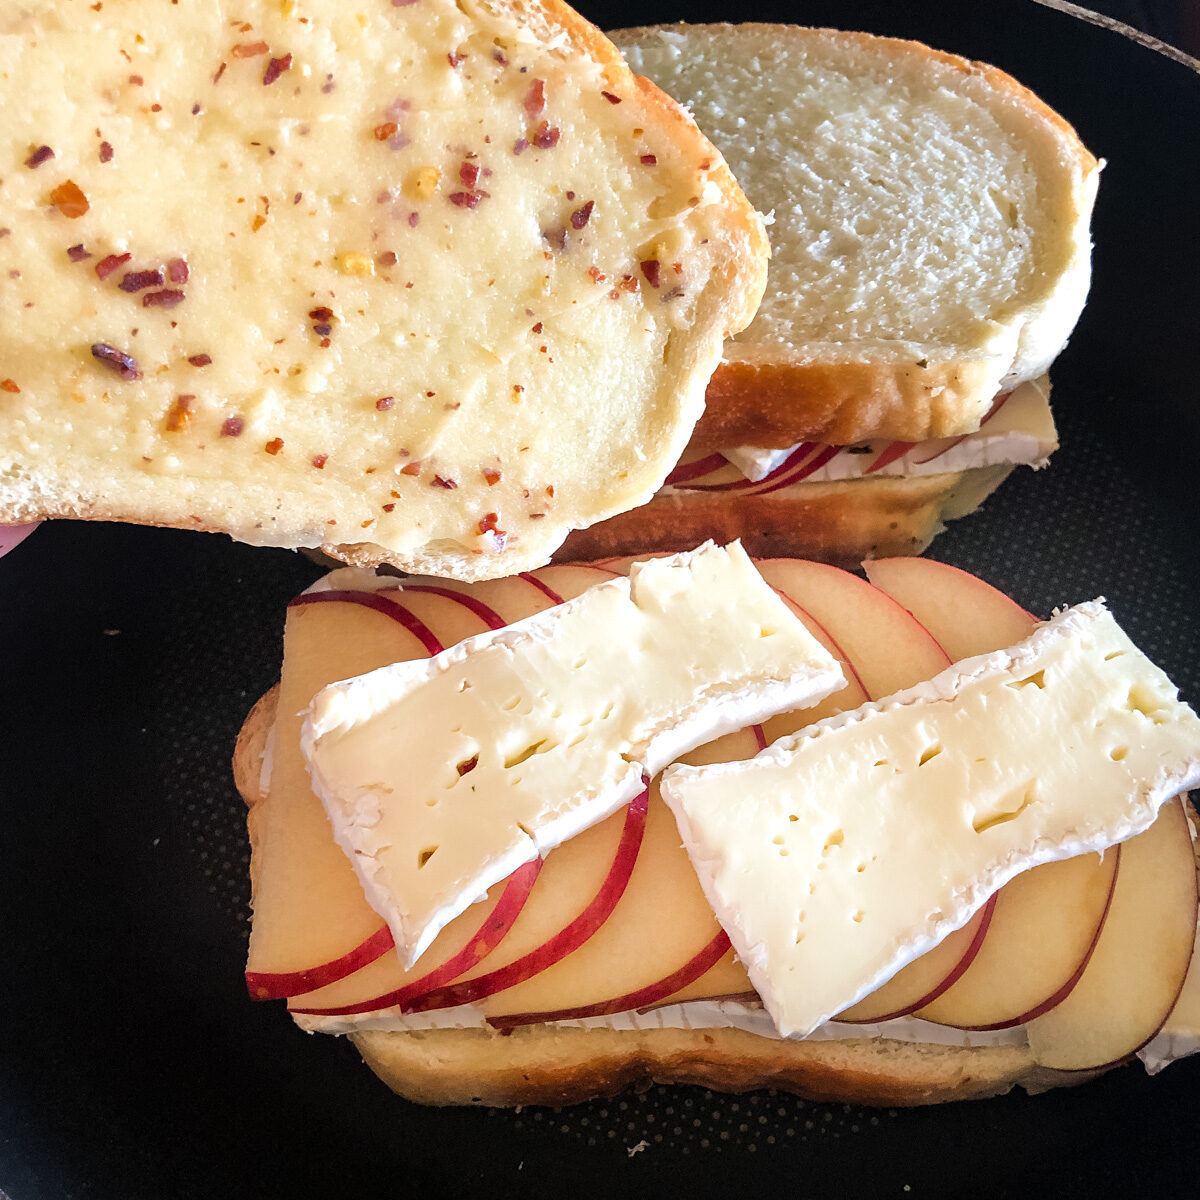 Layering thinly sliced brie and apples before grilling sandwich